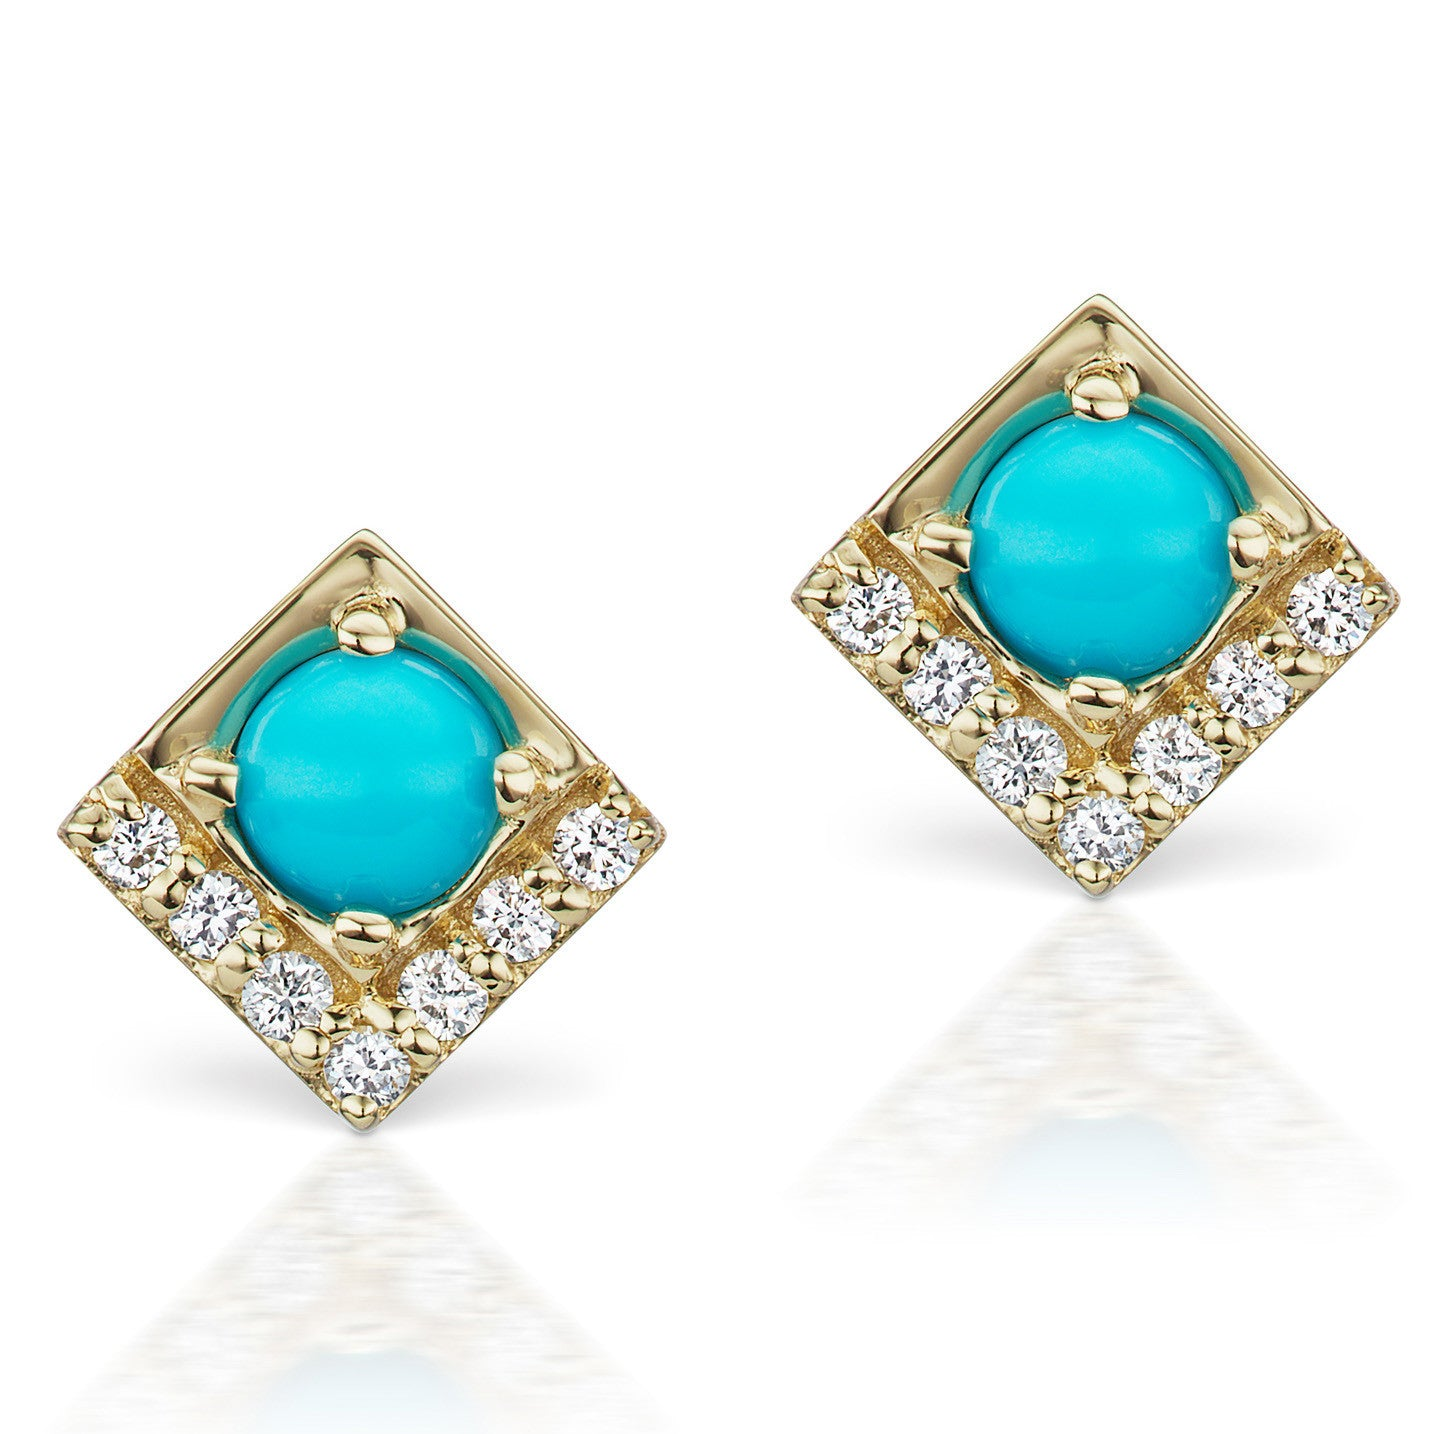 Jane Taylor Cirque Square 14K Yellow Gold Stud Earrings Turquoise & Diamonds